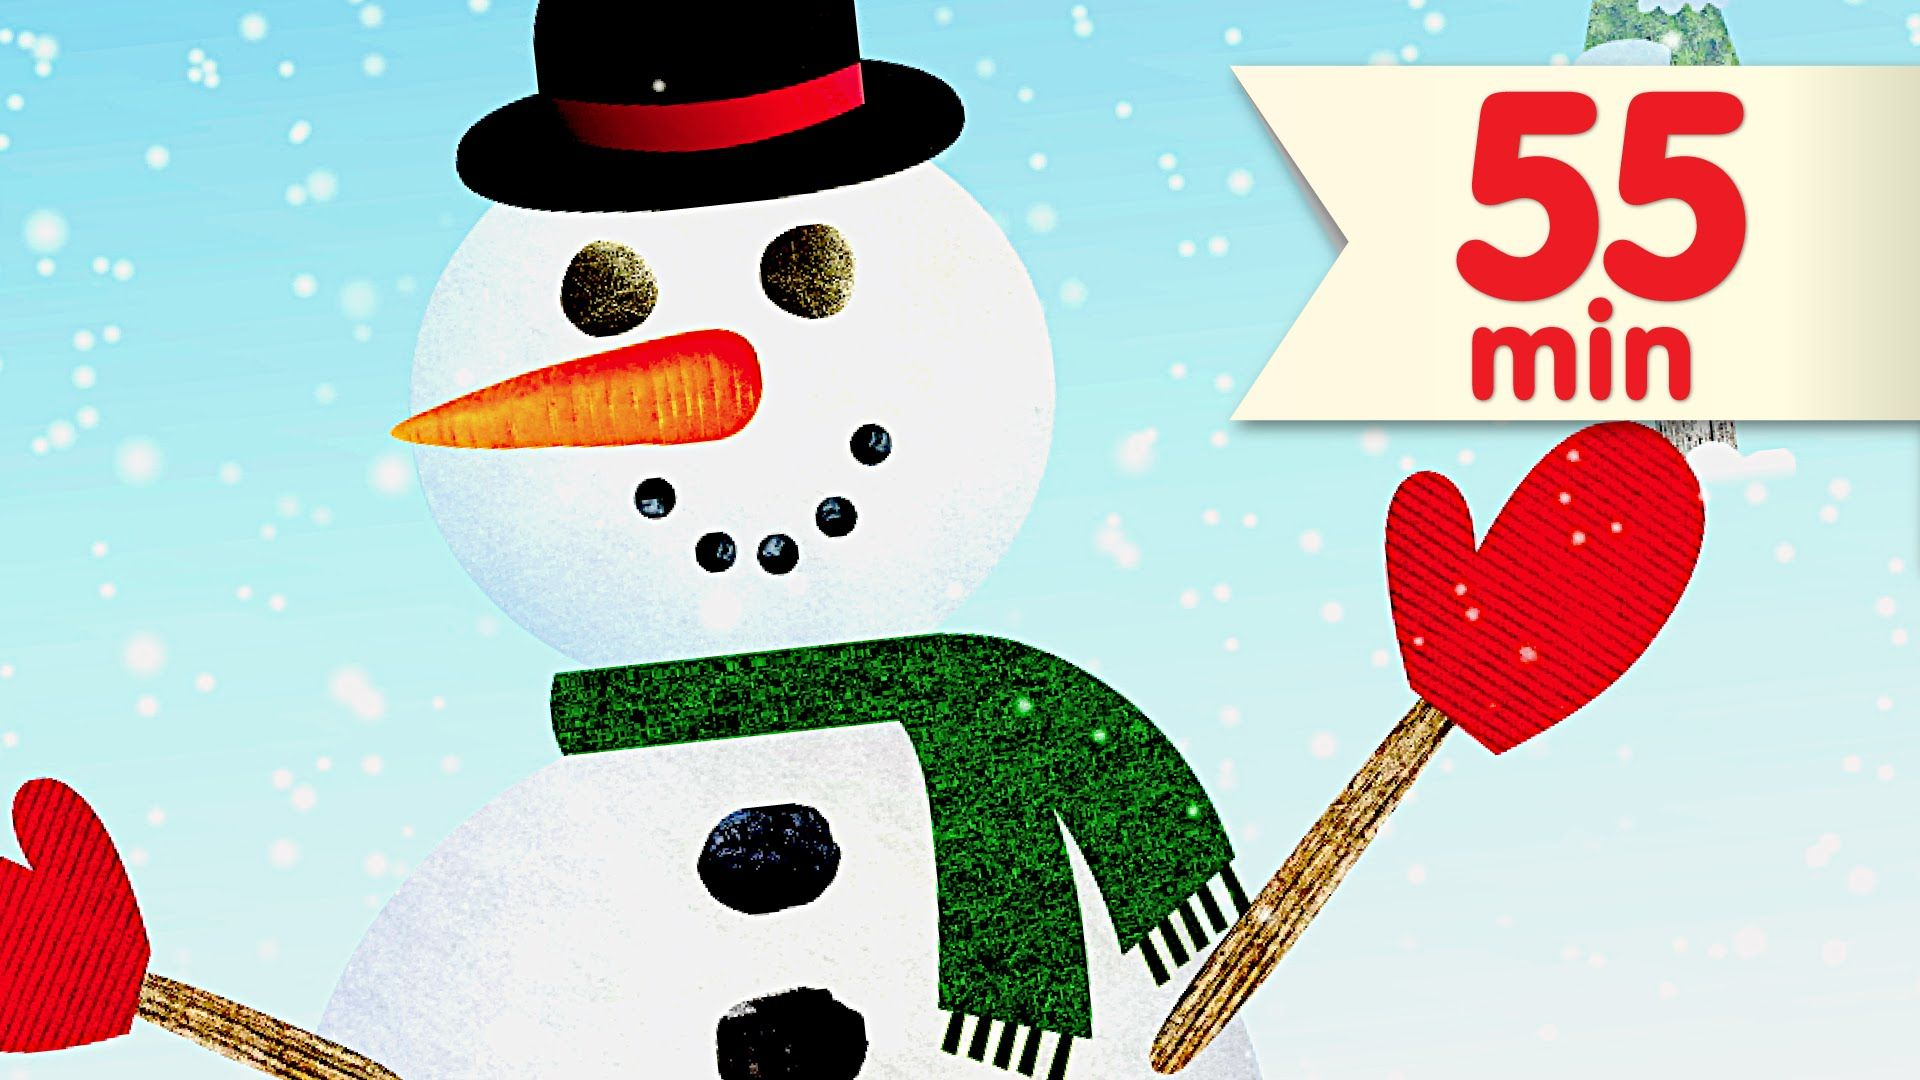 I'm A Little Snowman is a super simple, super cute, and